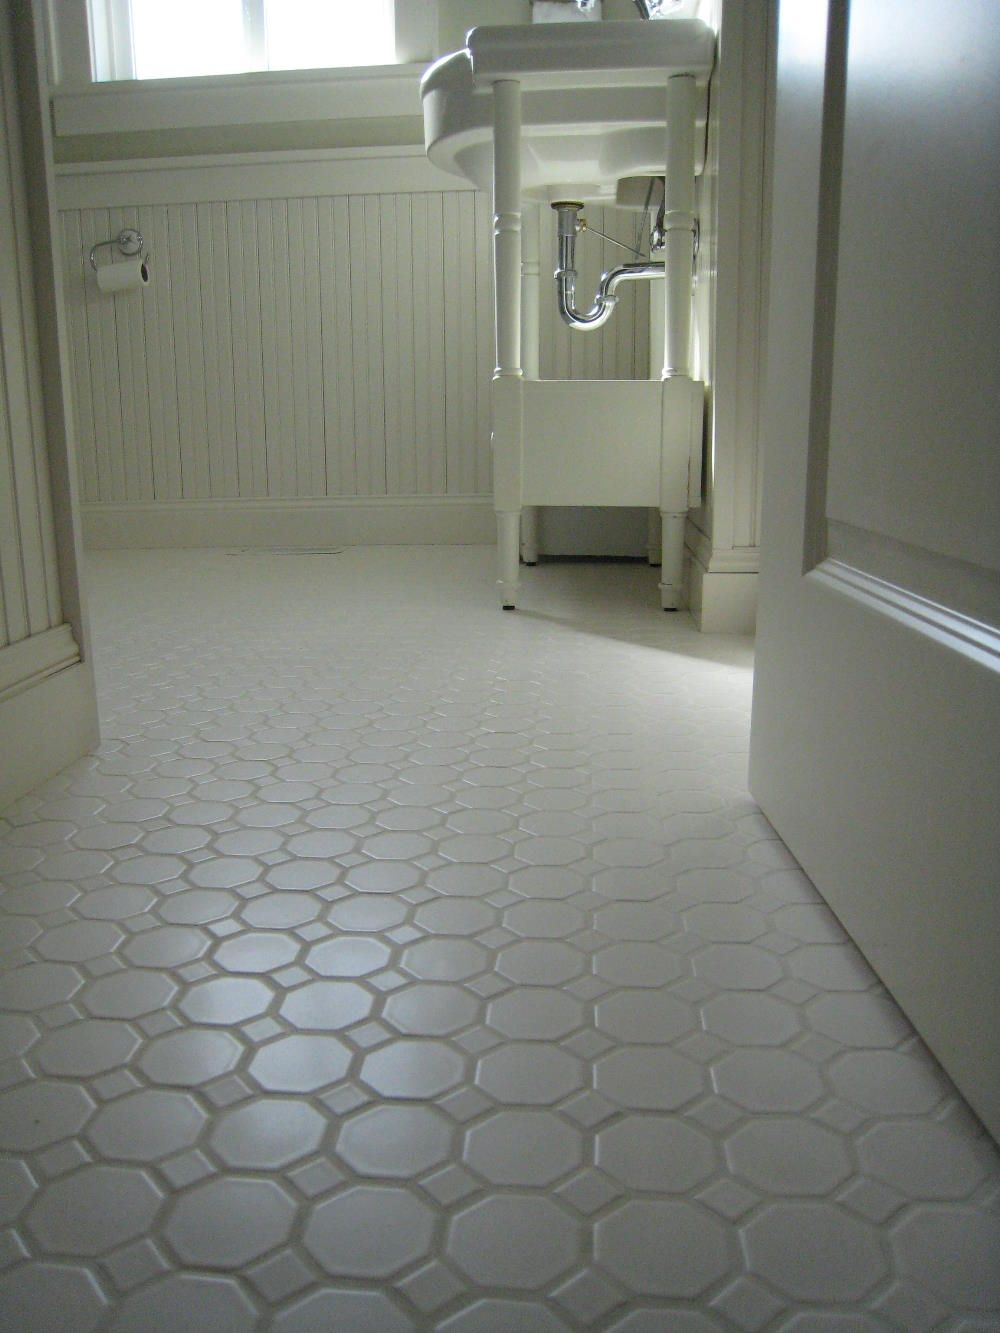 Type of floor tile for bathroom httpnextsoft21 pinterest type of floor tile for bathroom dailygadgetfo Choice Image